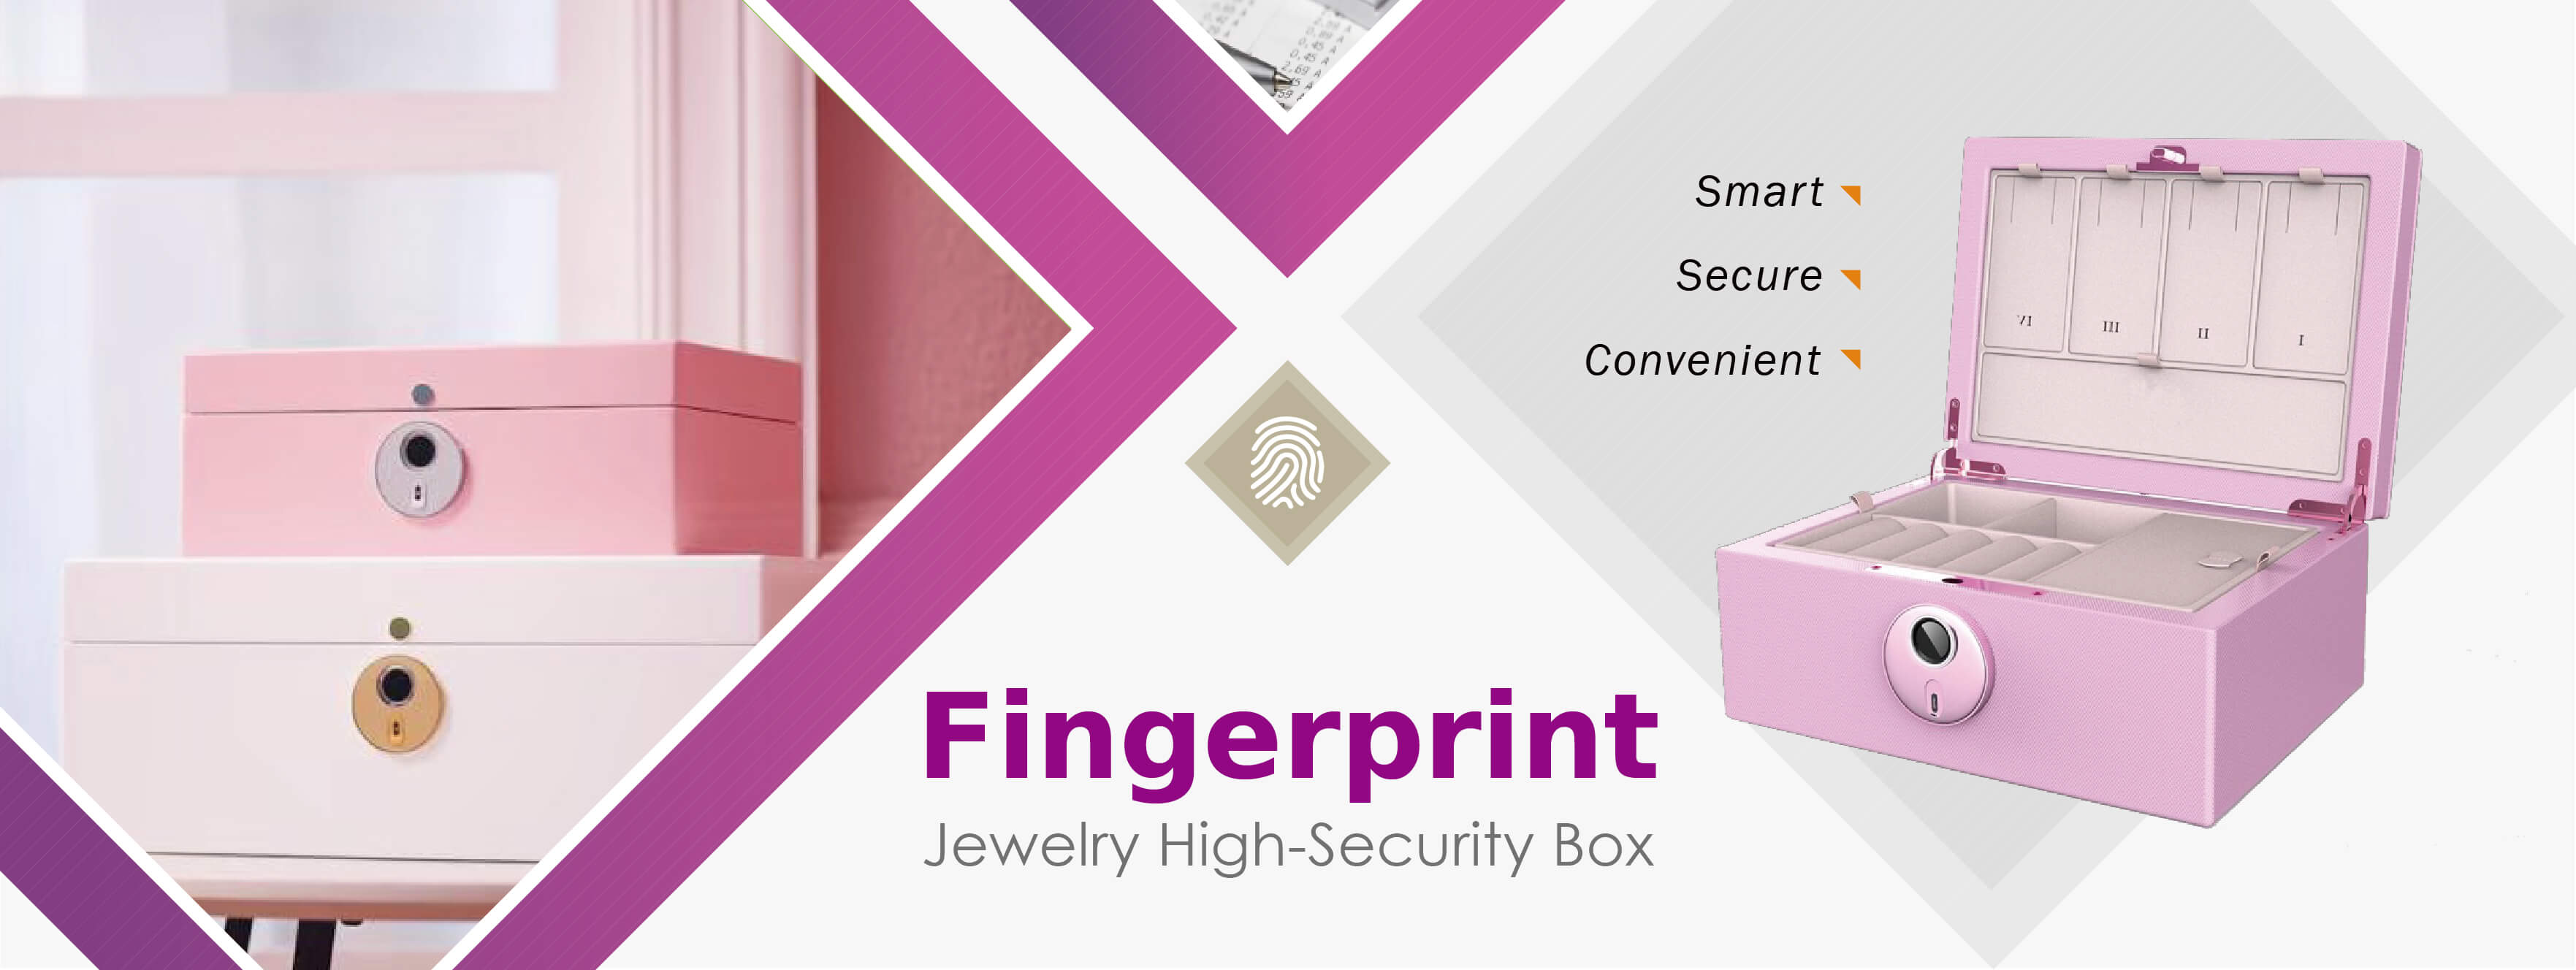 Midas Touch Fingerprint Jewelry High-Security Box